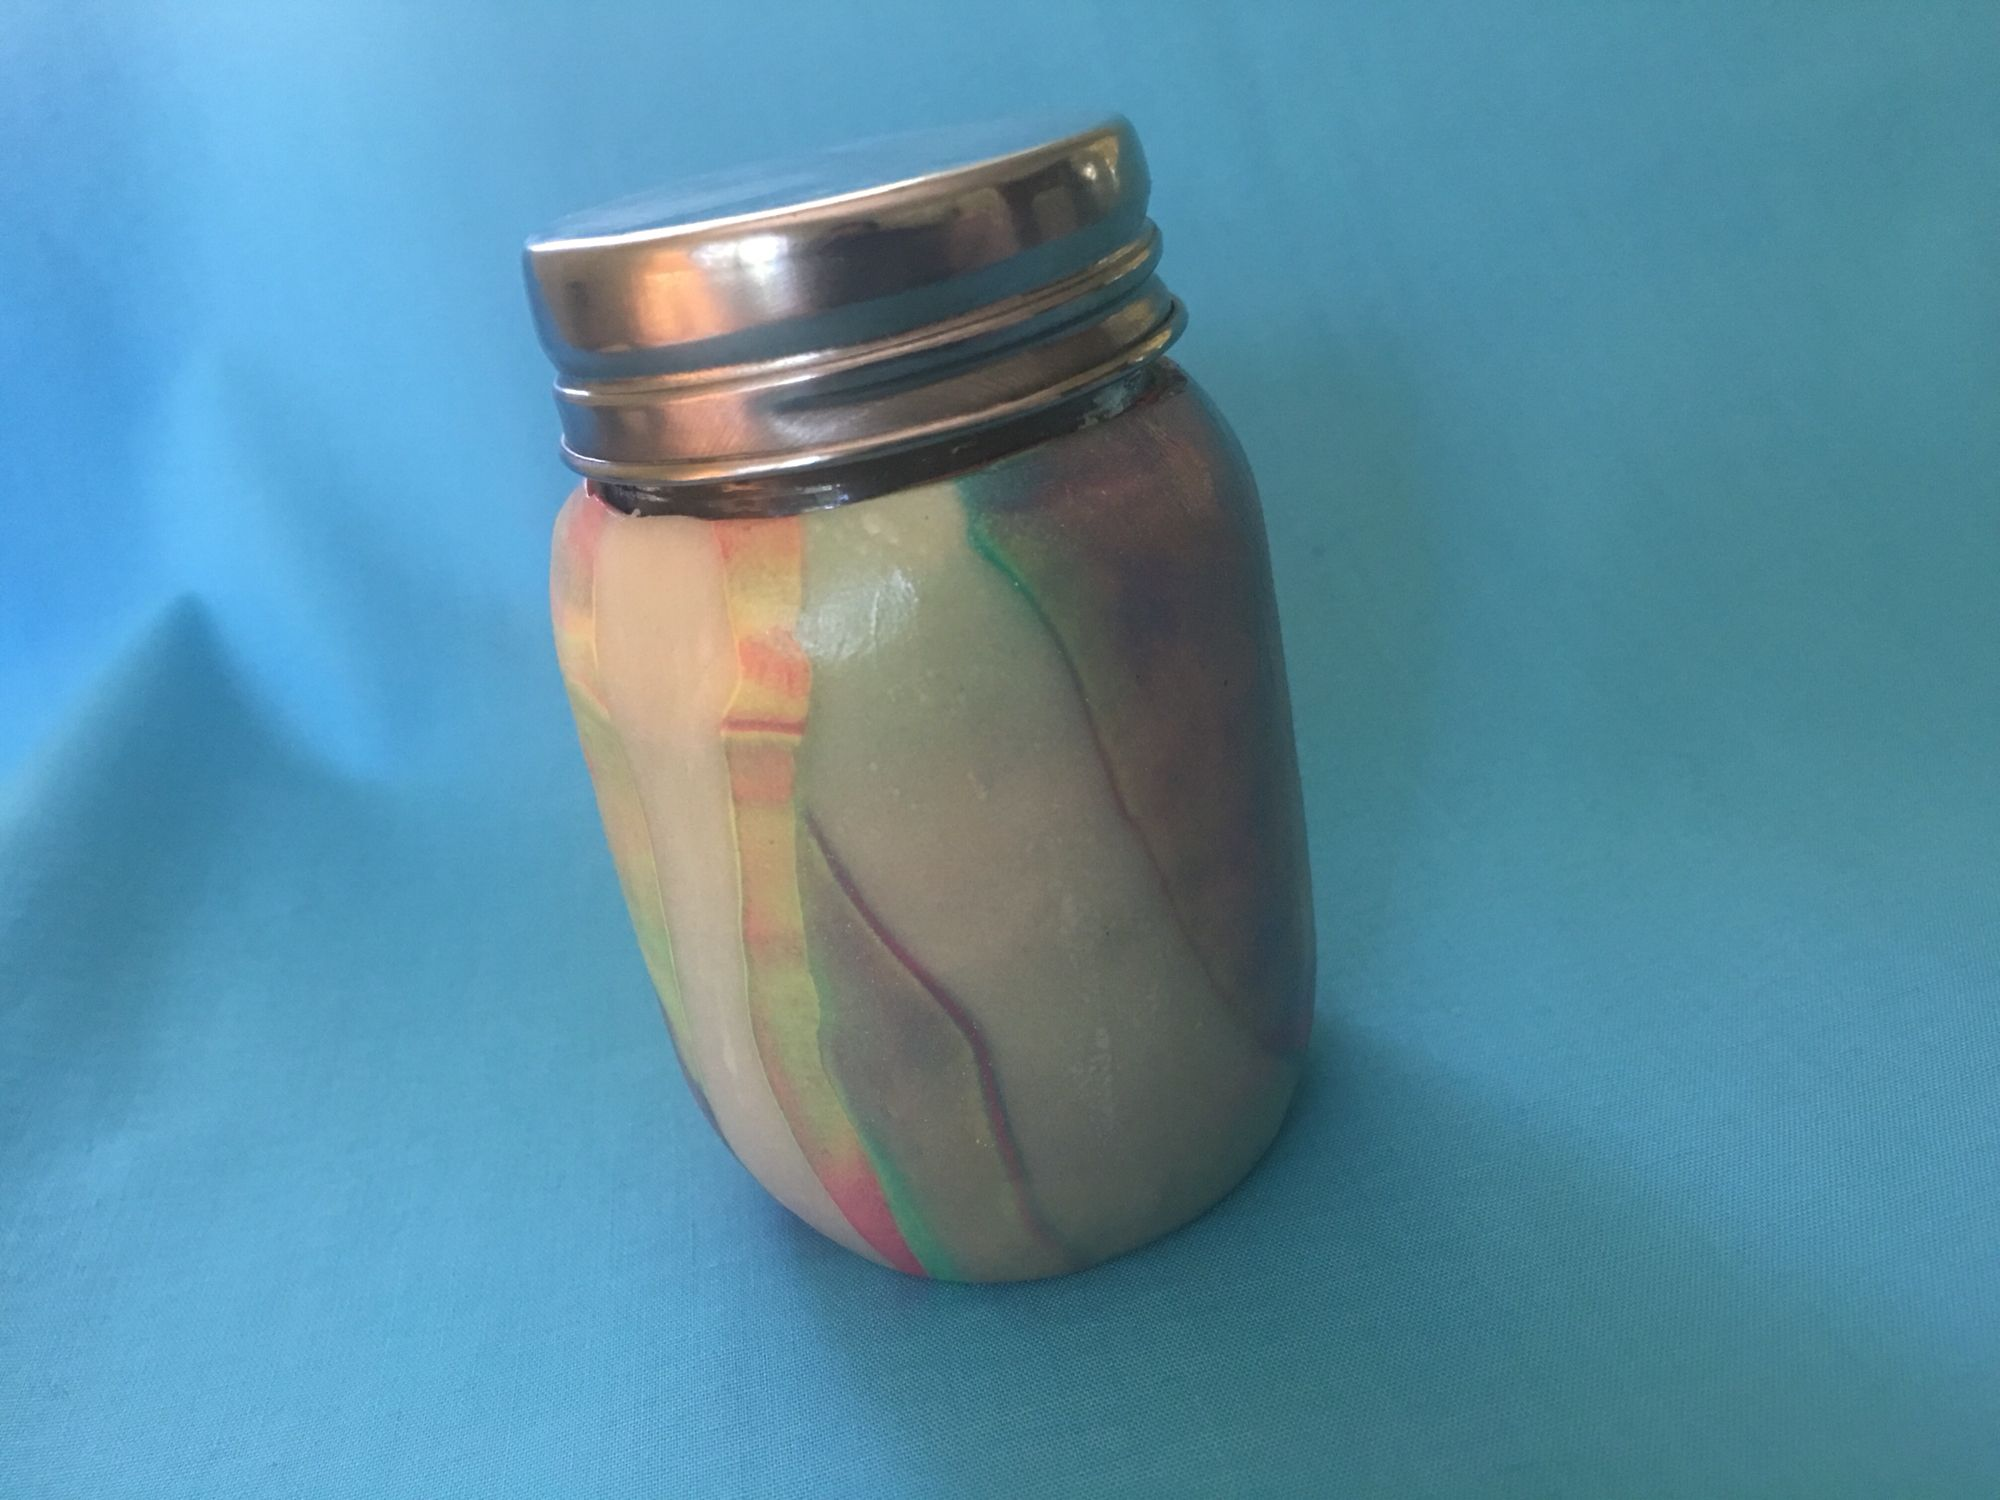 Cool jar looks like a shell sparkles in the light..